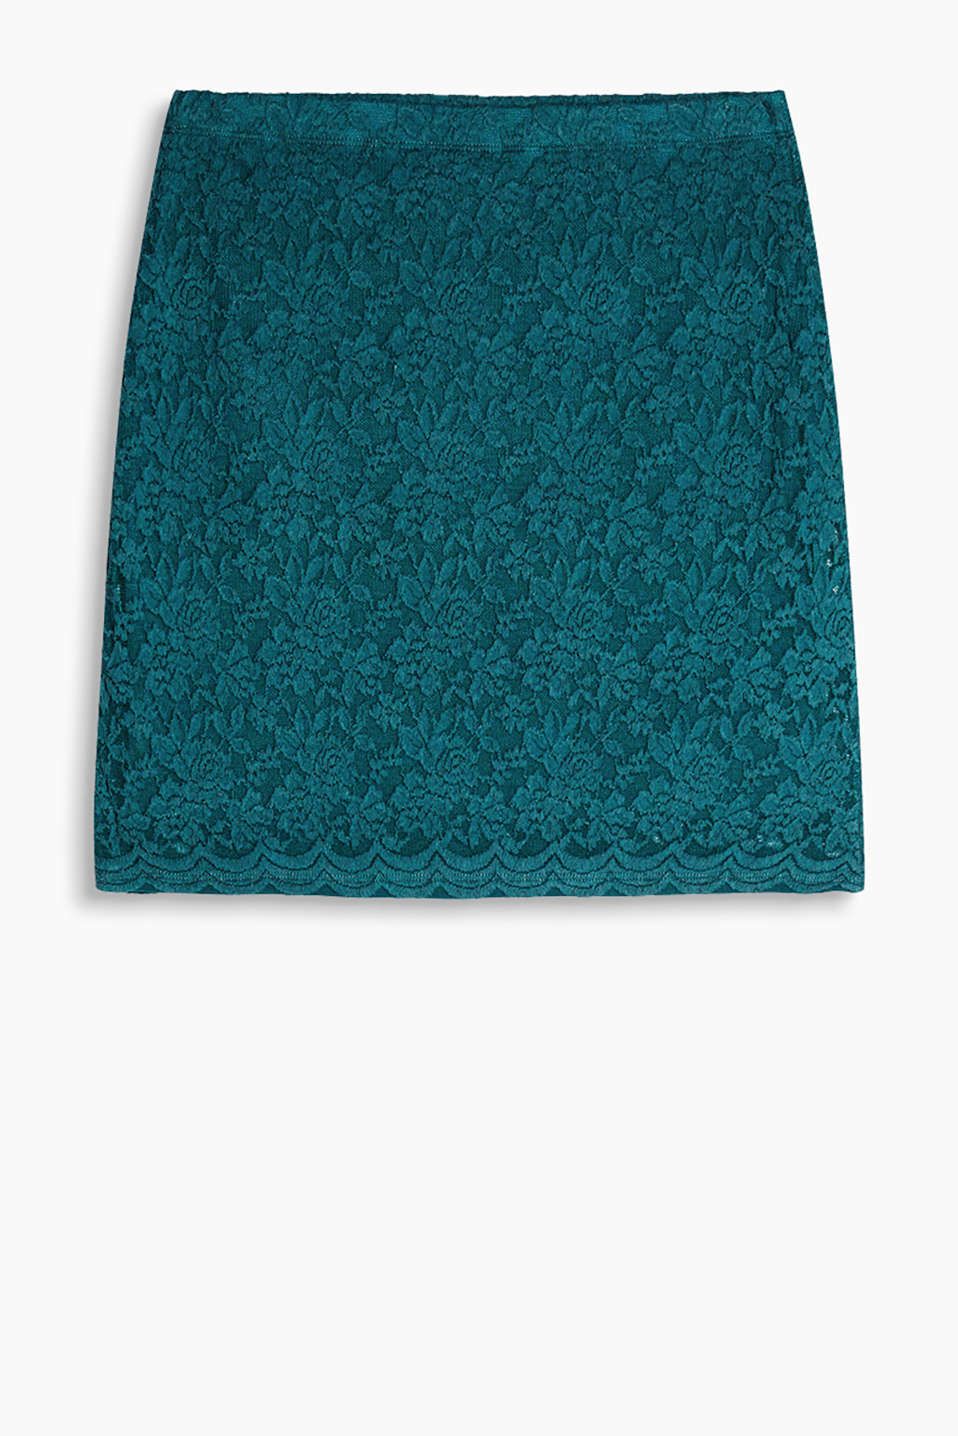 Lined mini skirt in fine lace with a comfortable elasticated waistband